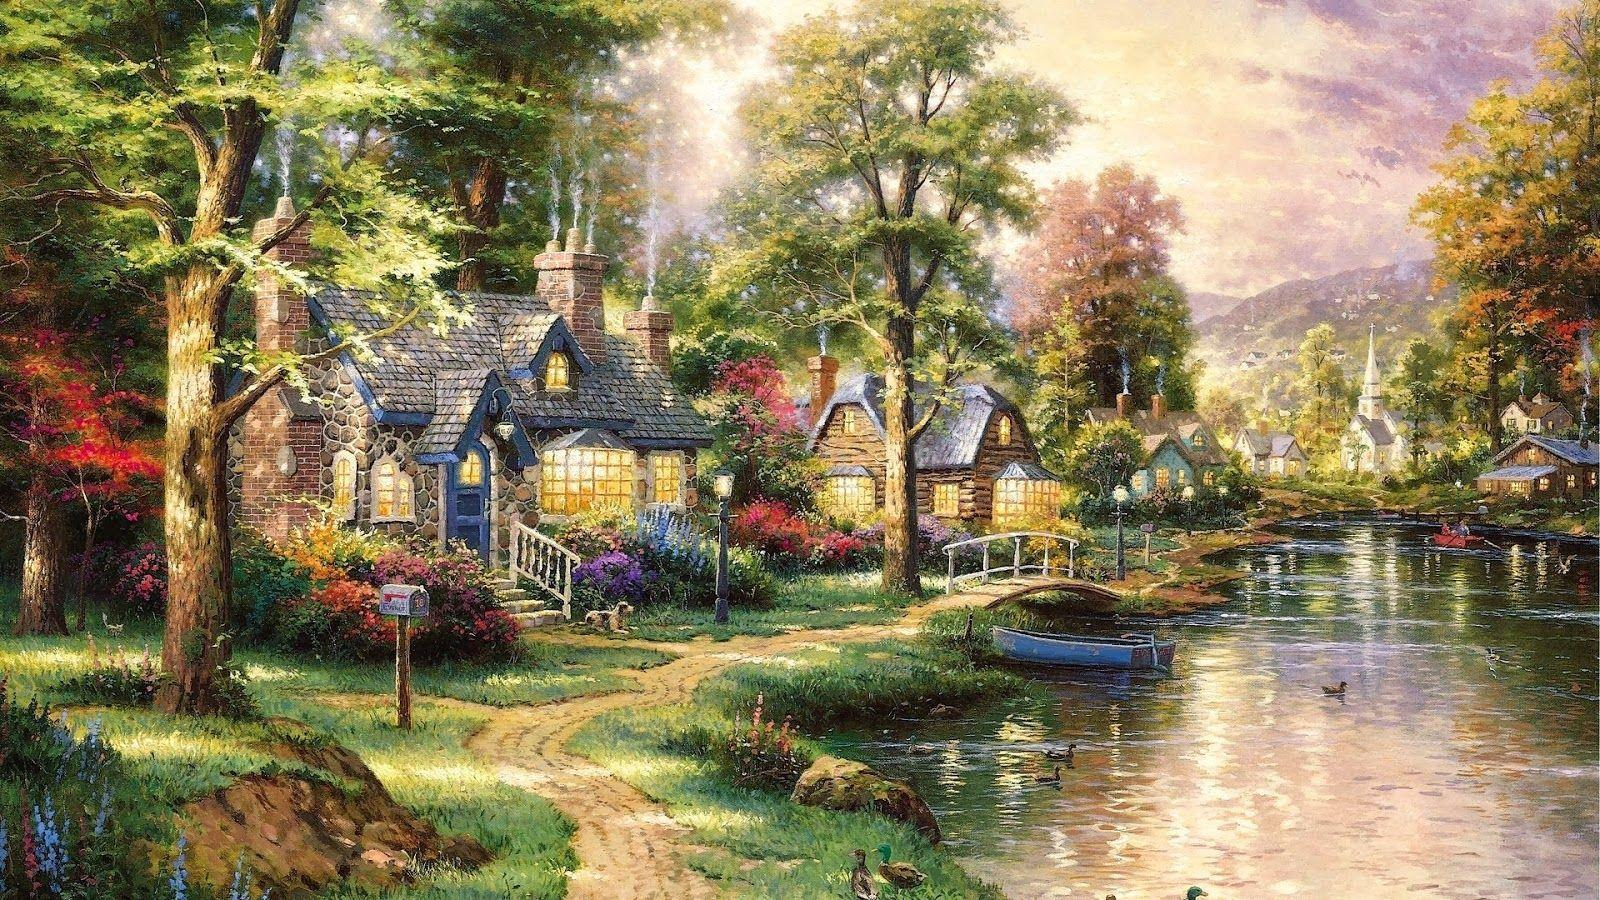 Thomas kinkade disney wallpapers wallpaper cave - Art village wallpaper ...